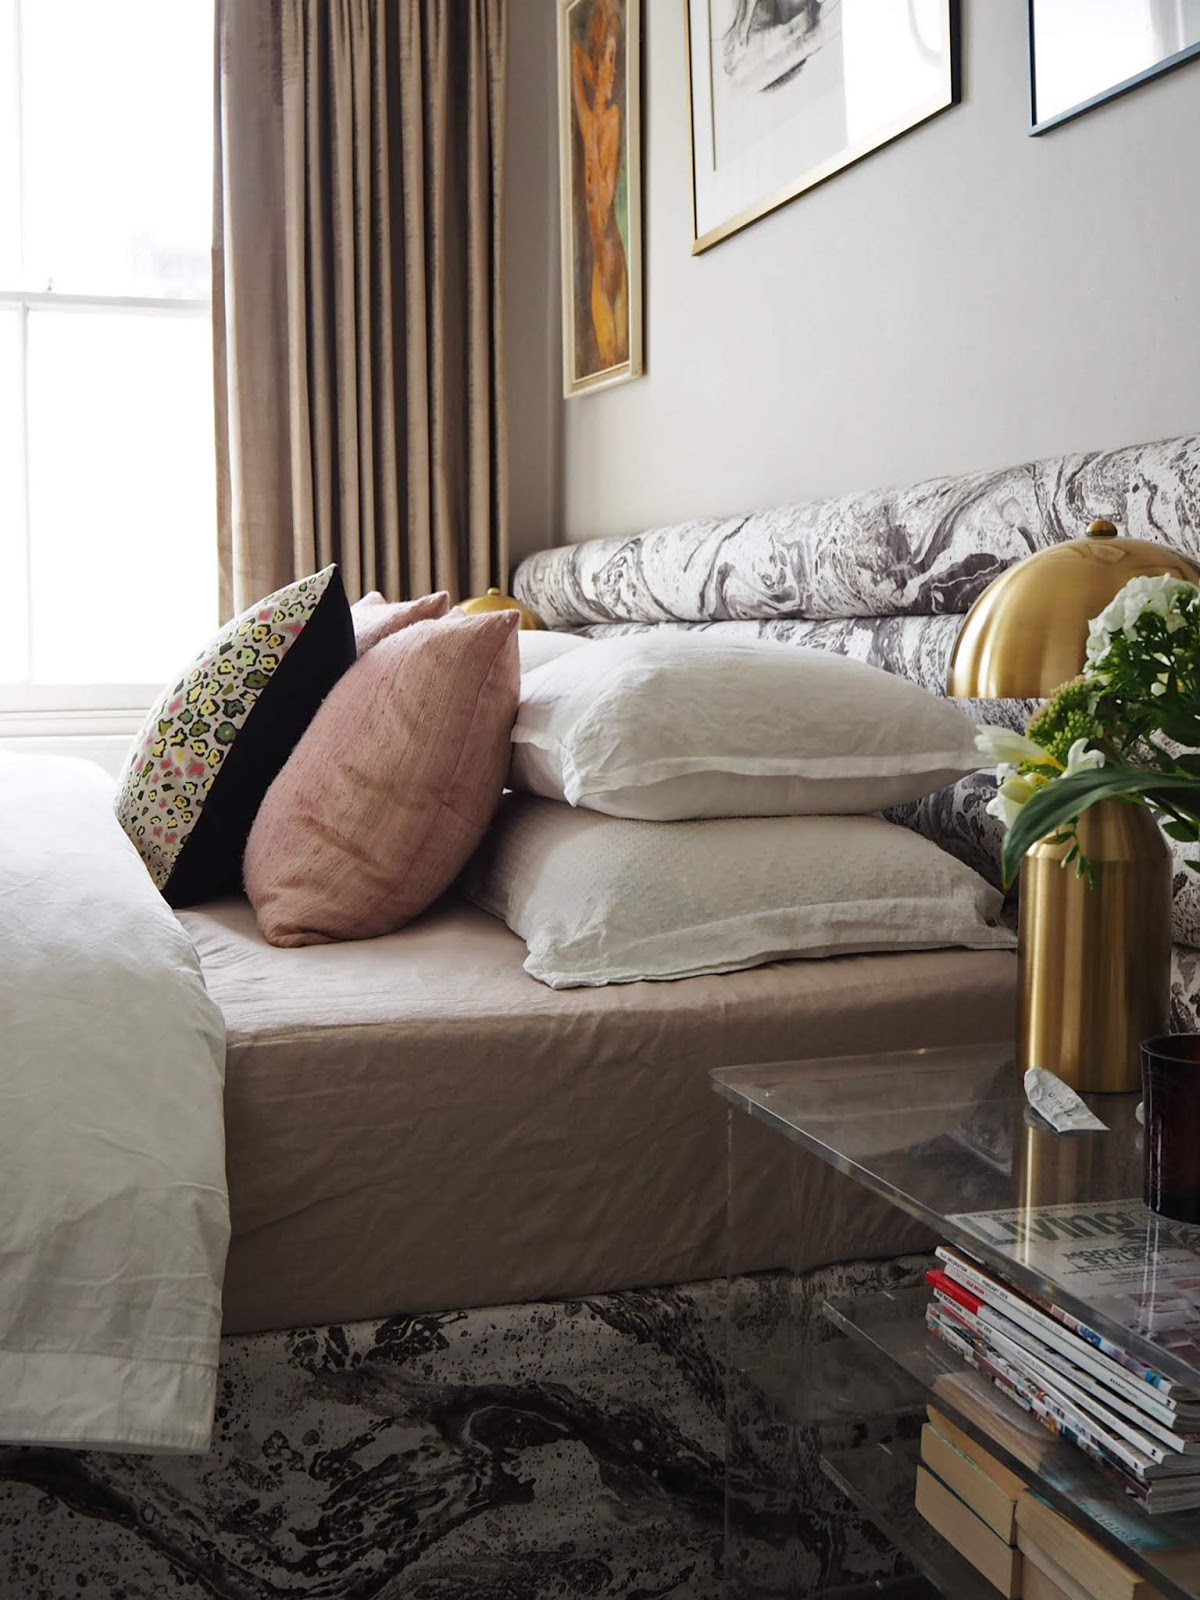 2019 Interior Design Trends I'm Really Excited About ... on Trendy Bedroom  id=26217